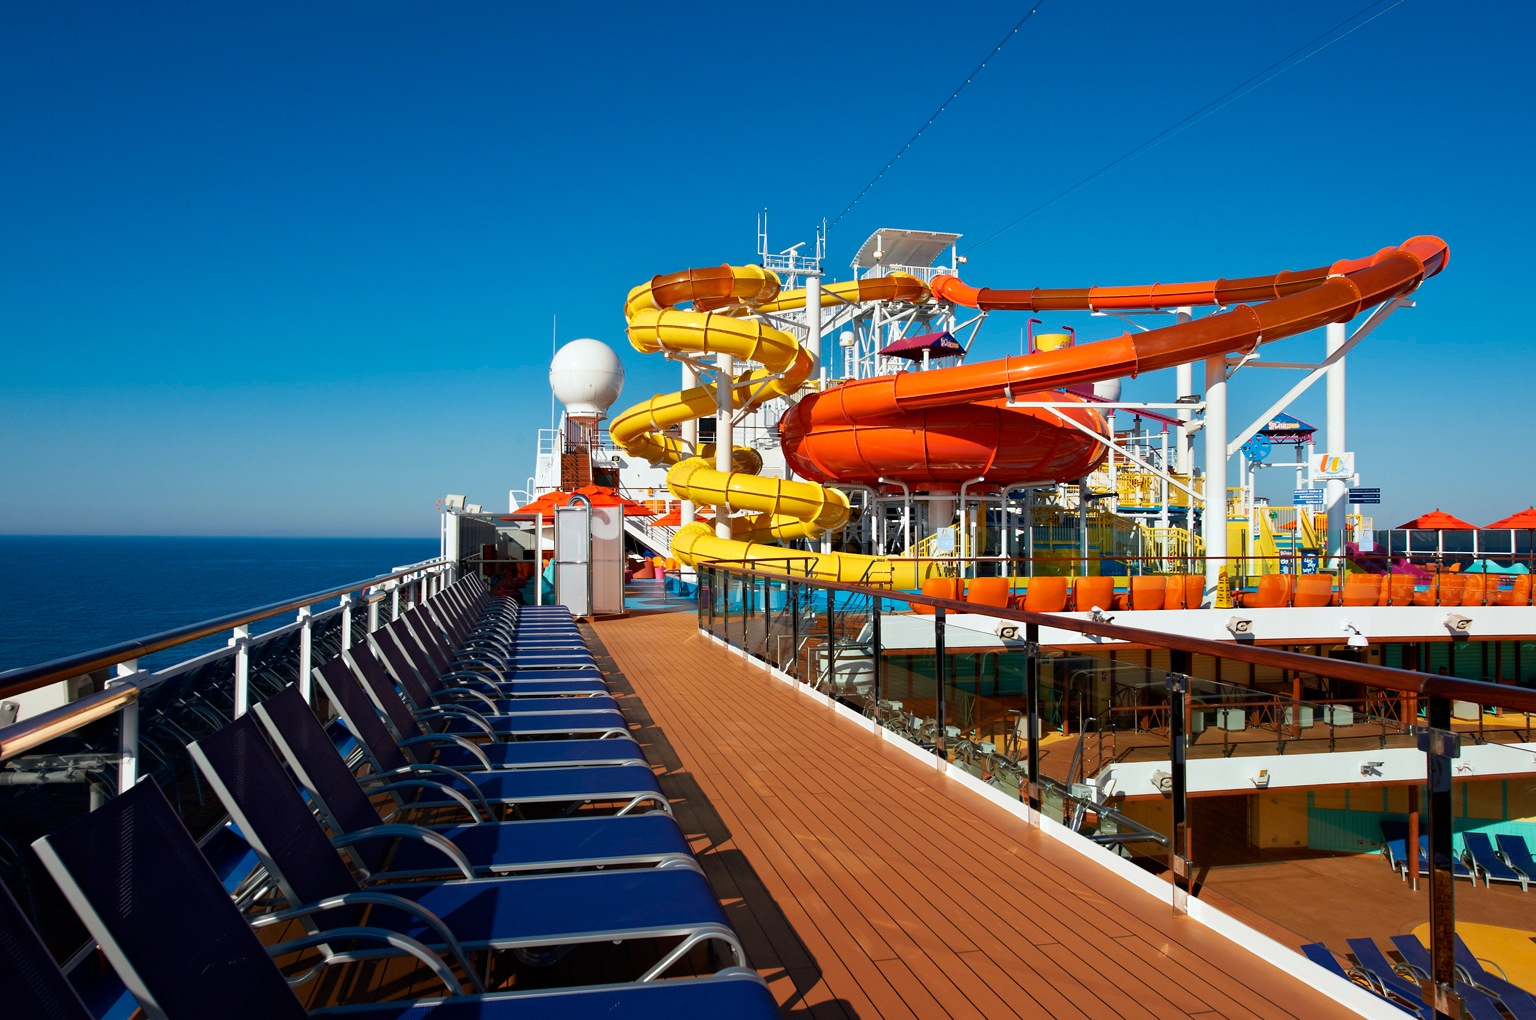 Bermuda Cruise with Carnival Breeze on 21/09/2019 (20190921BR07) on